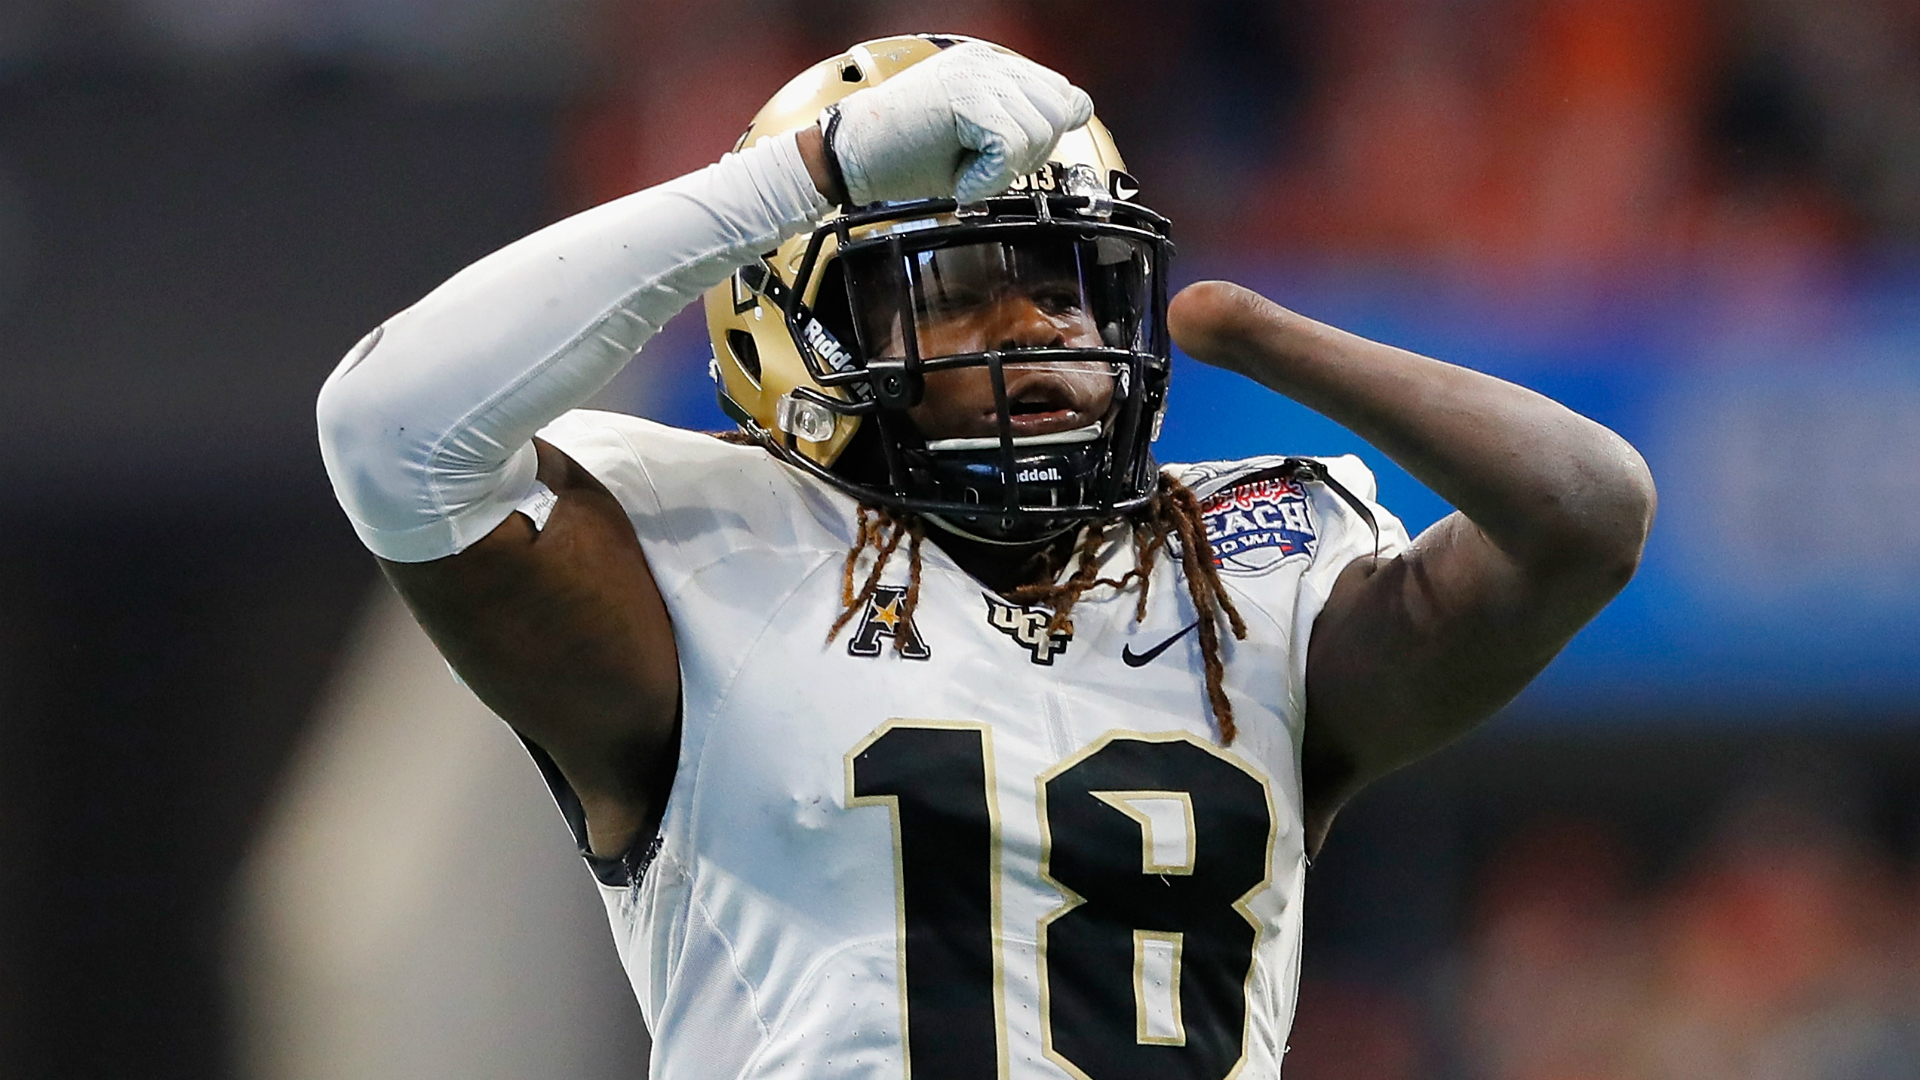 Shaquem Griffin posts 20-rep bench press using prosthetic